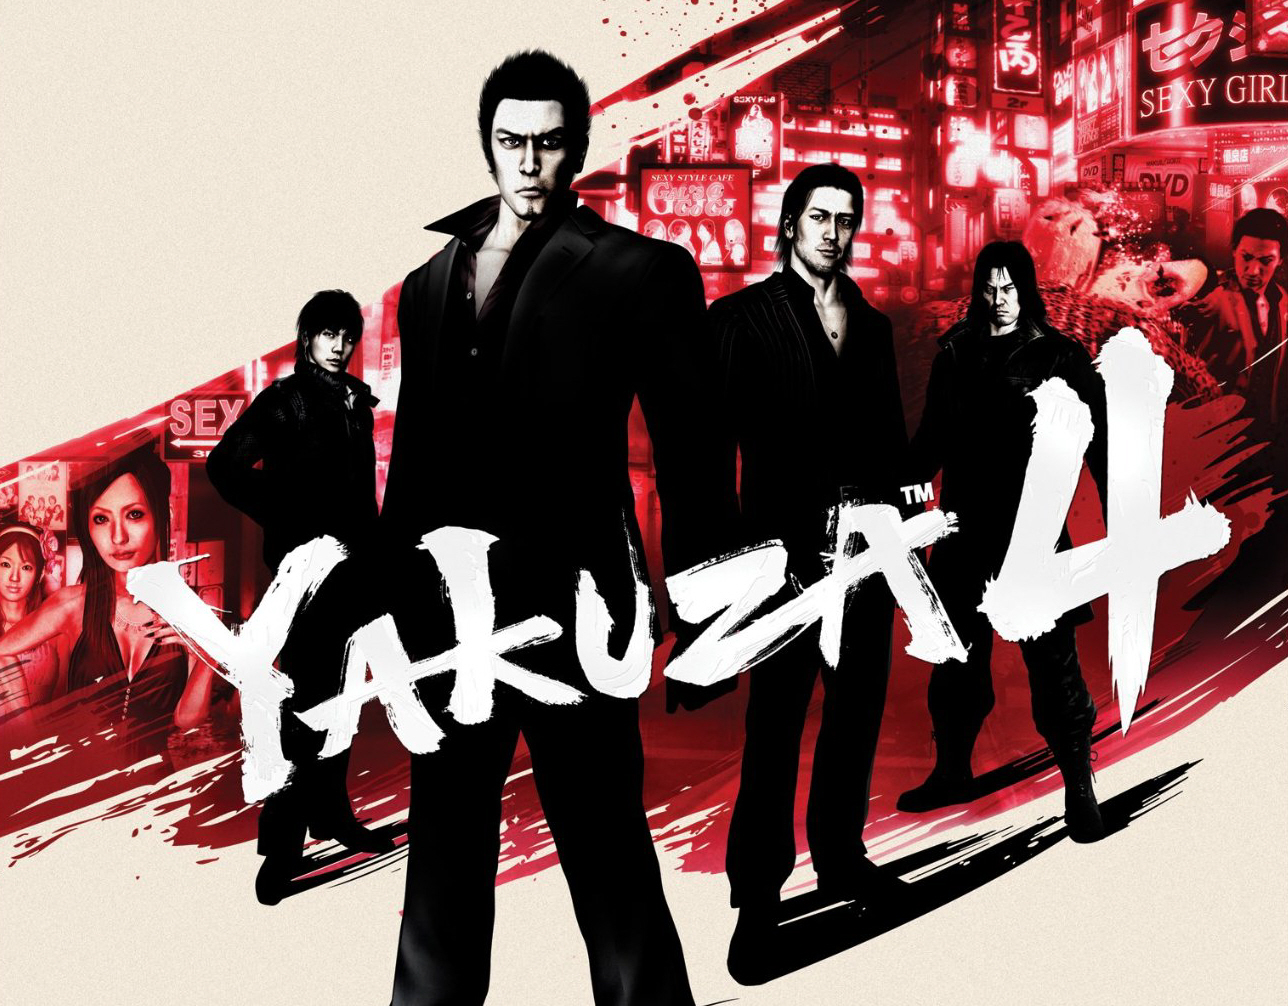 Loan Shark Yakuza